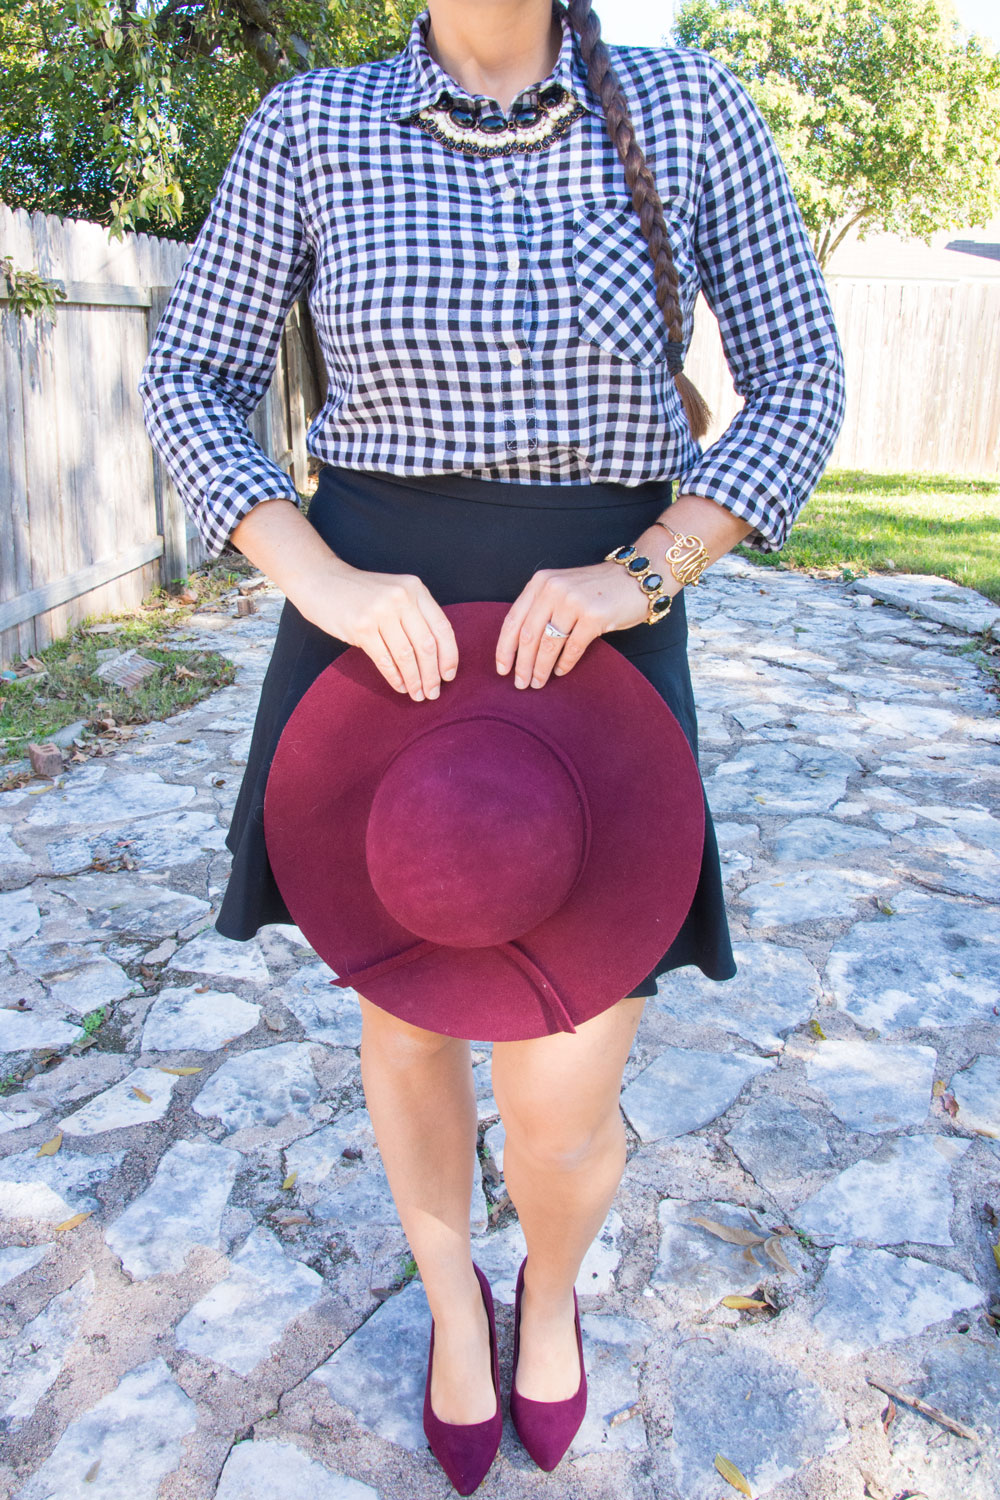 Burgudy Hat with black buffalo plaid